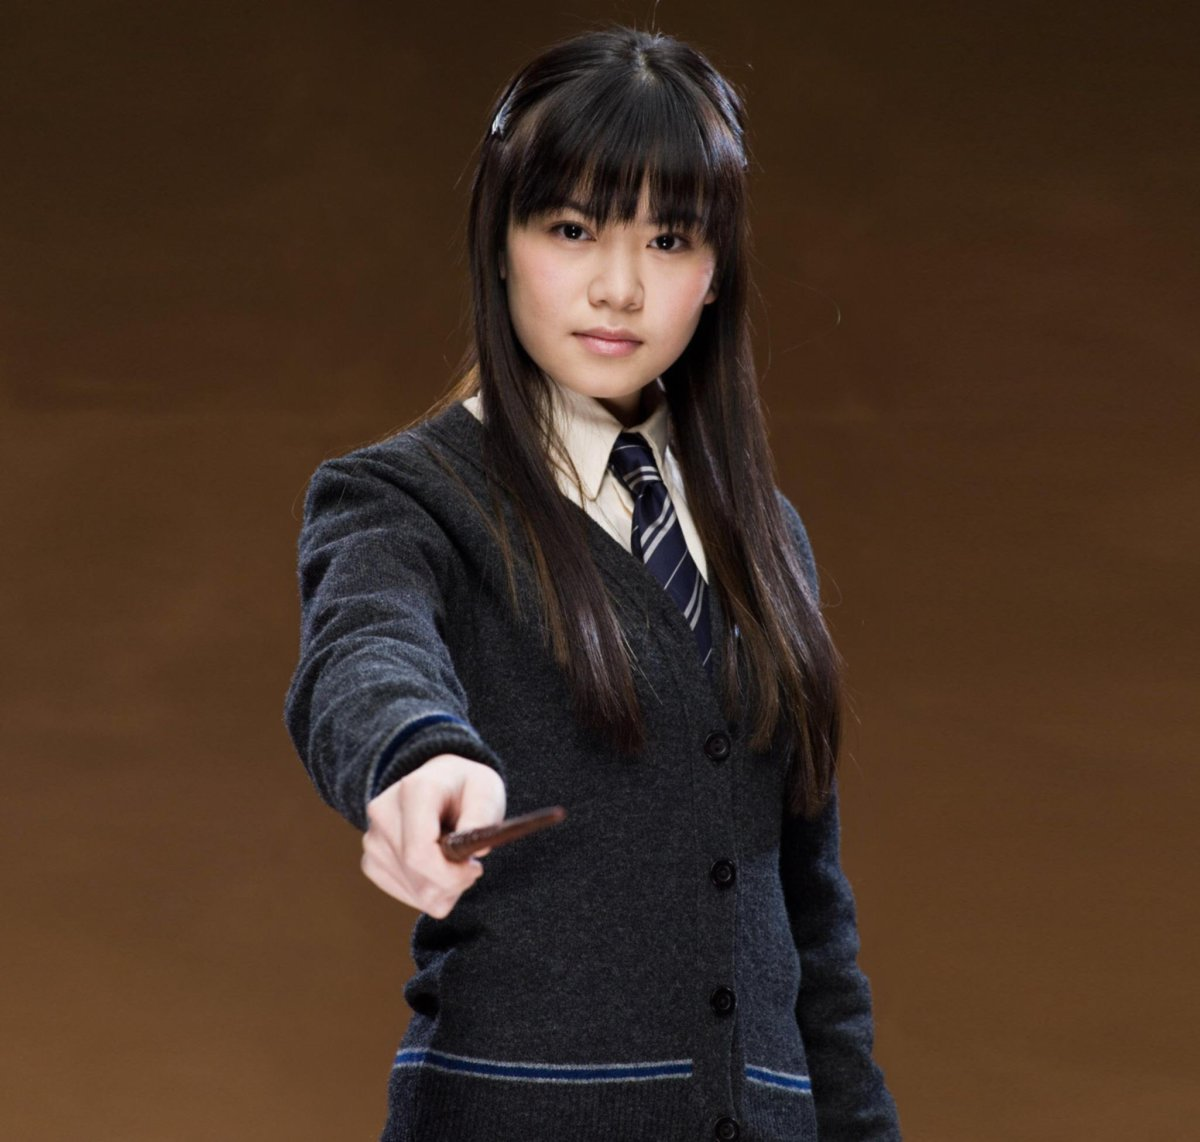 : happy birthday, Katie Leung (Cho Chang in Harry Potter)!